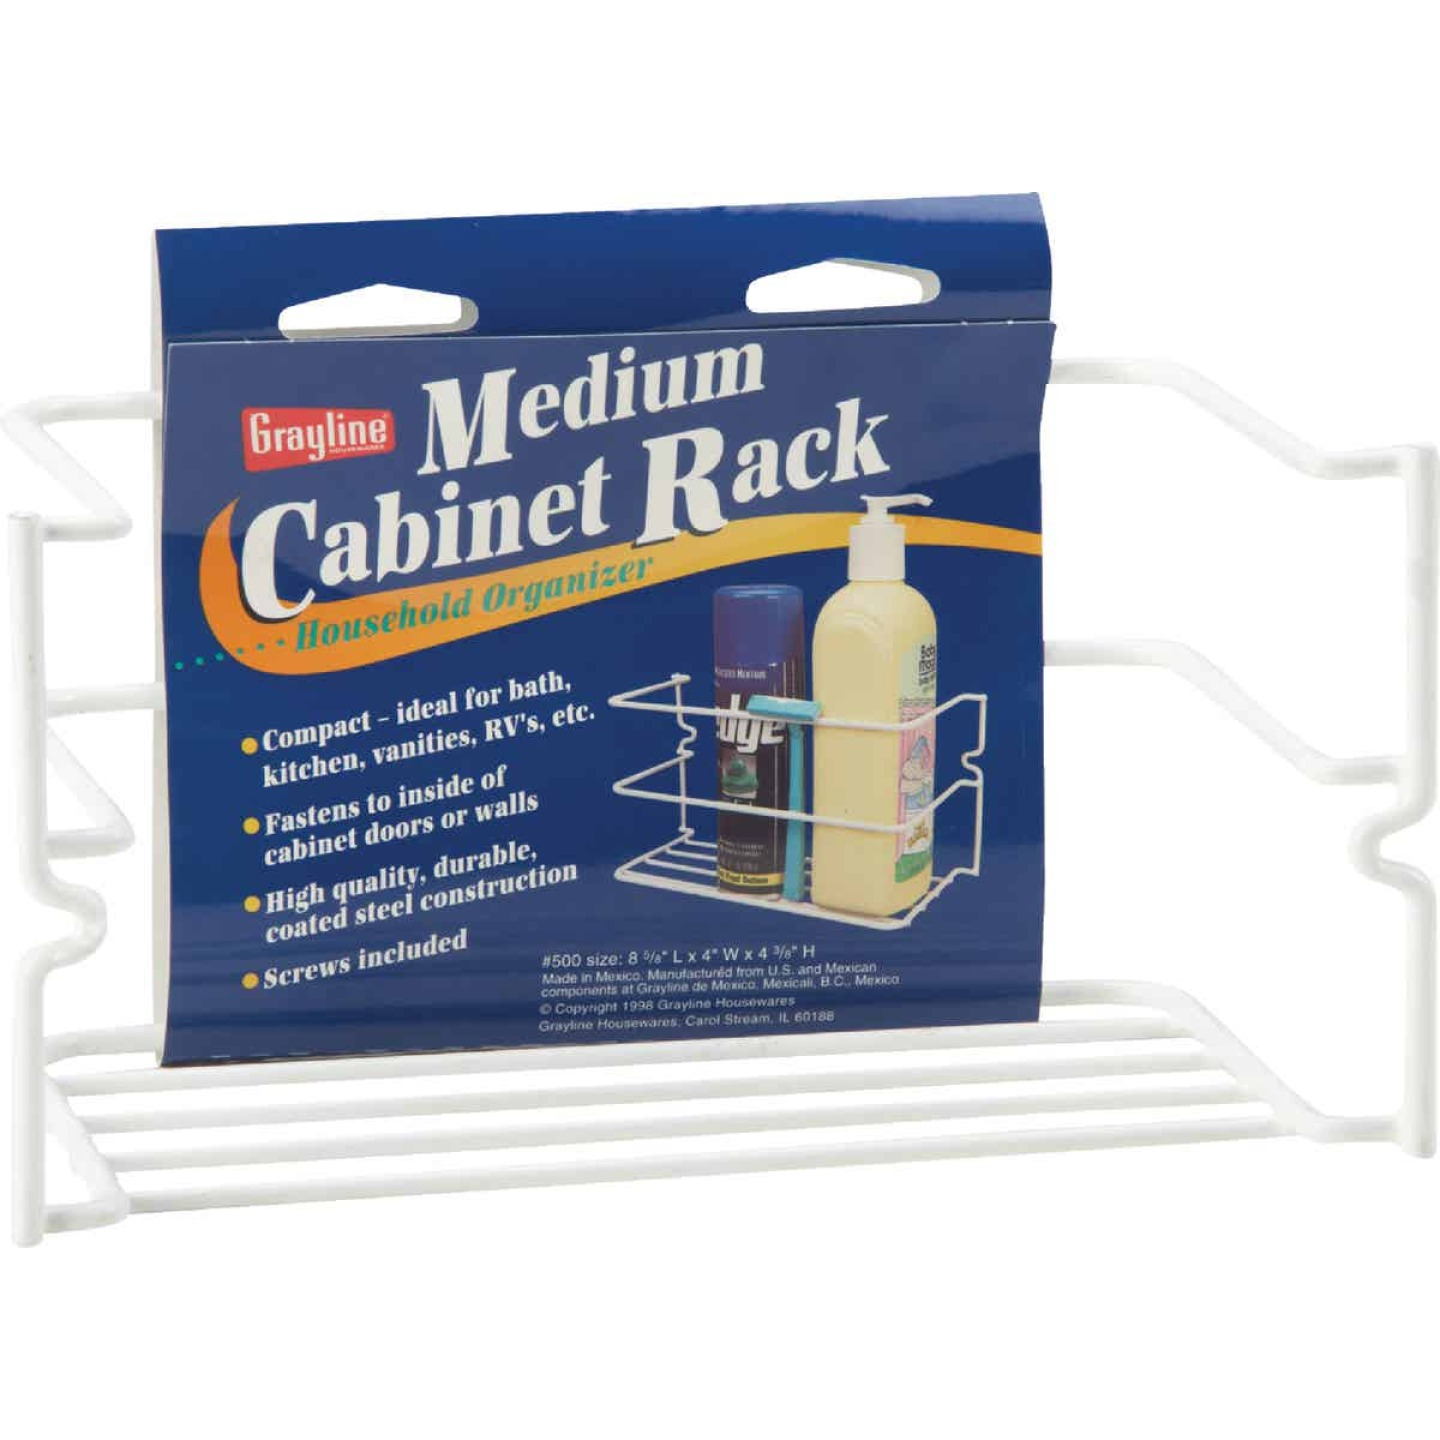 Grayline White Handy Caddy Cabinet Rack Image 2